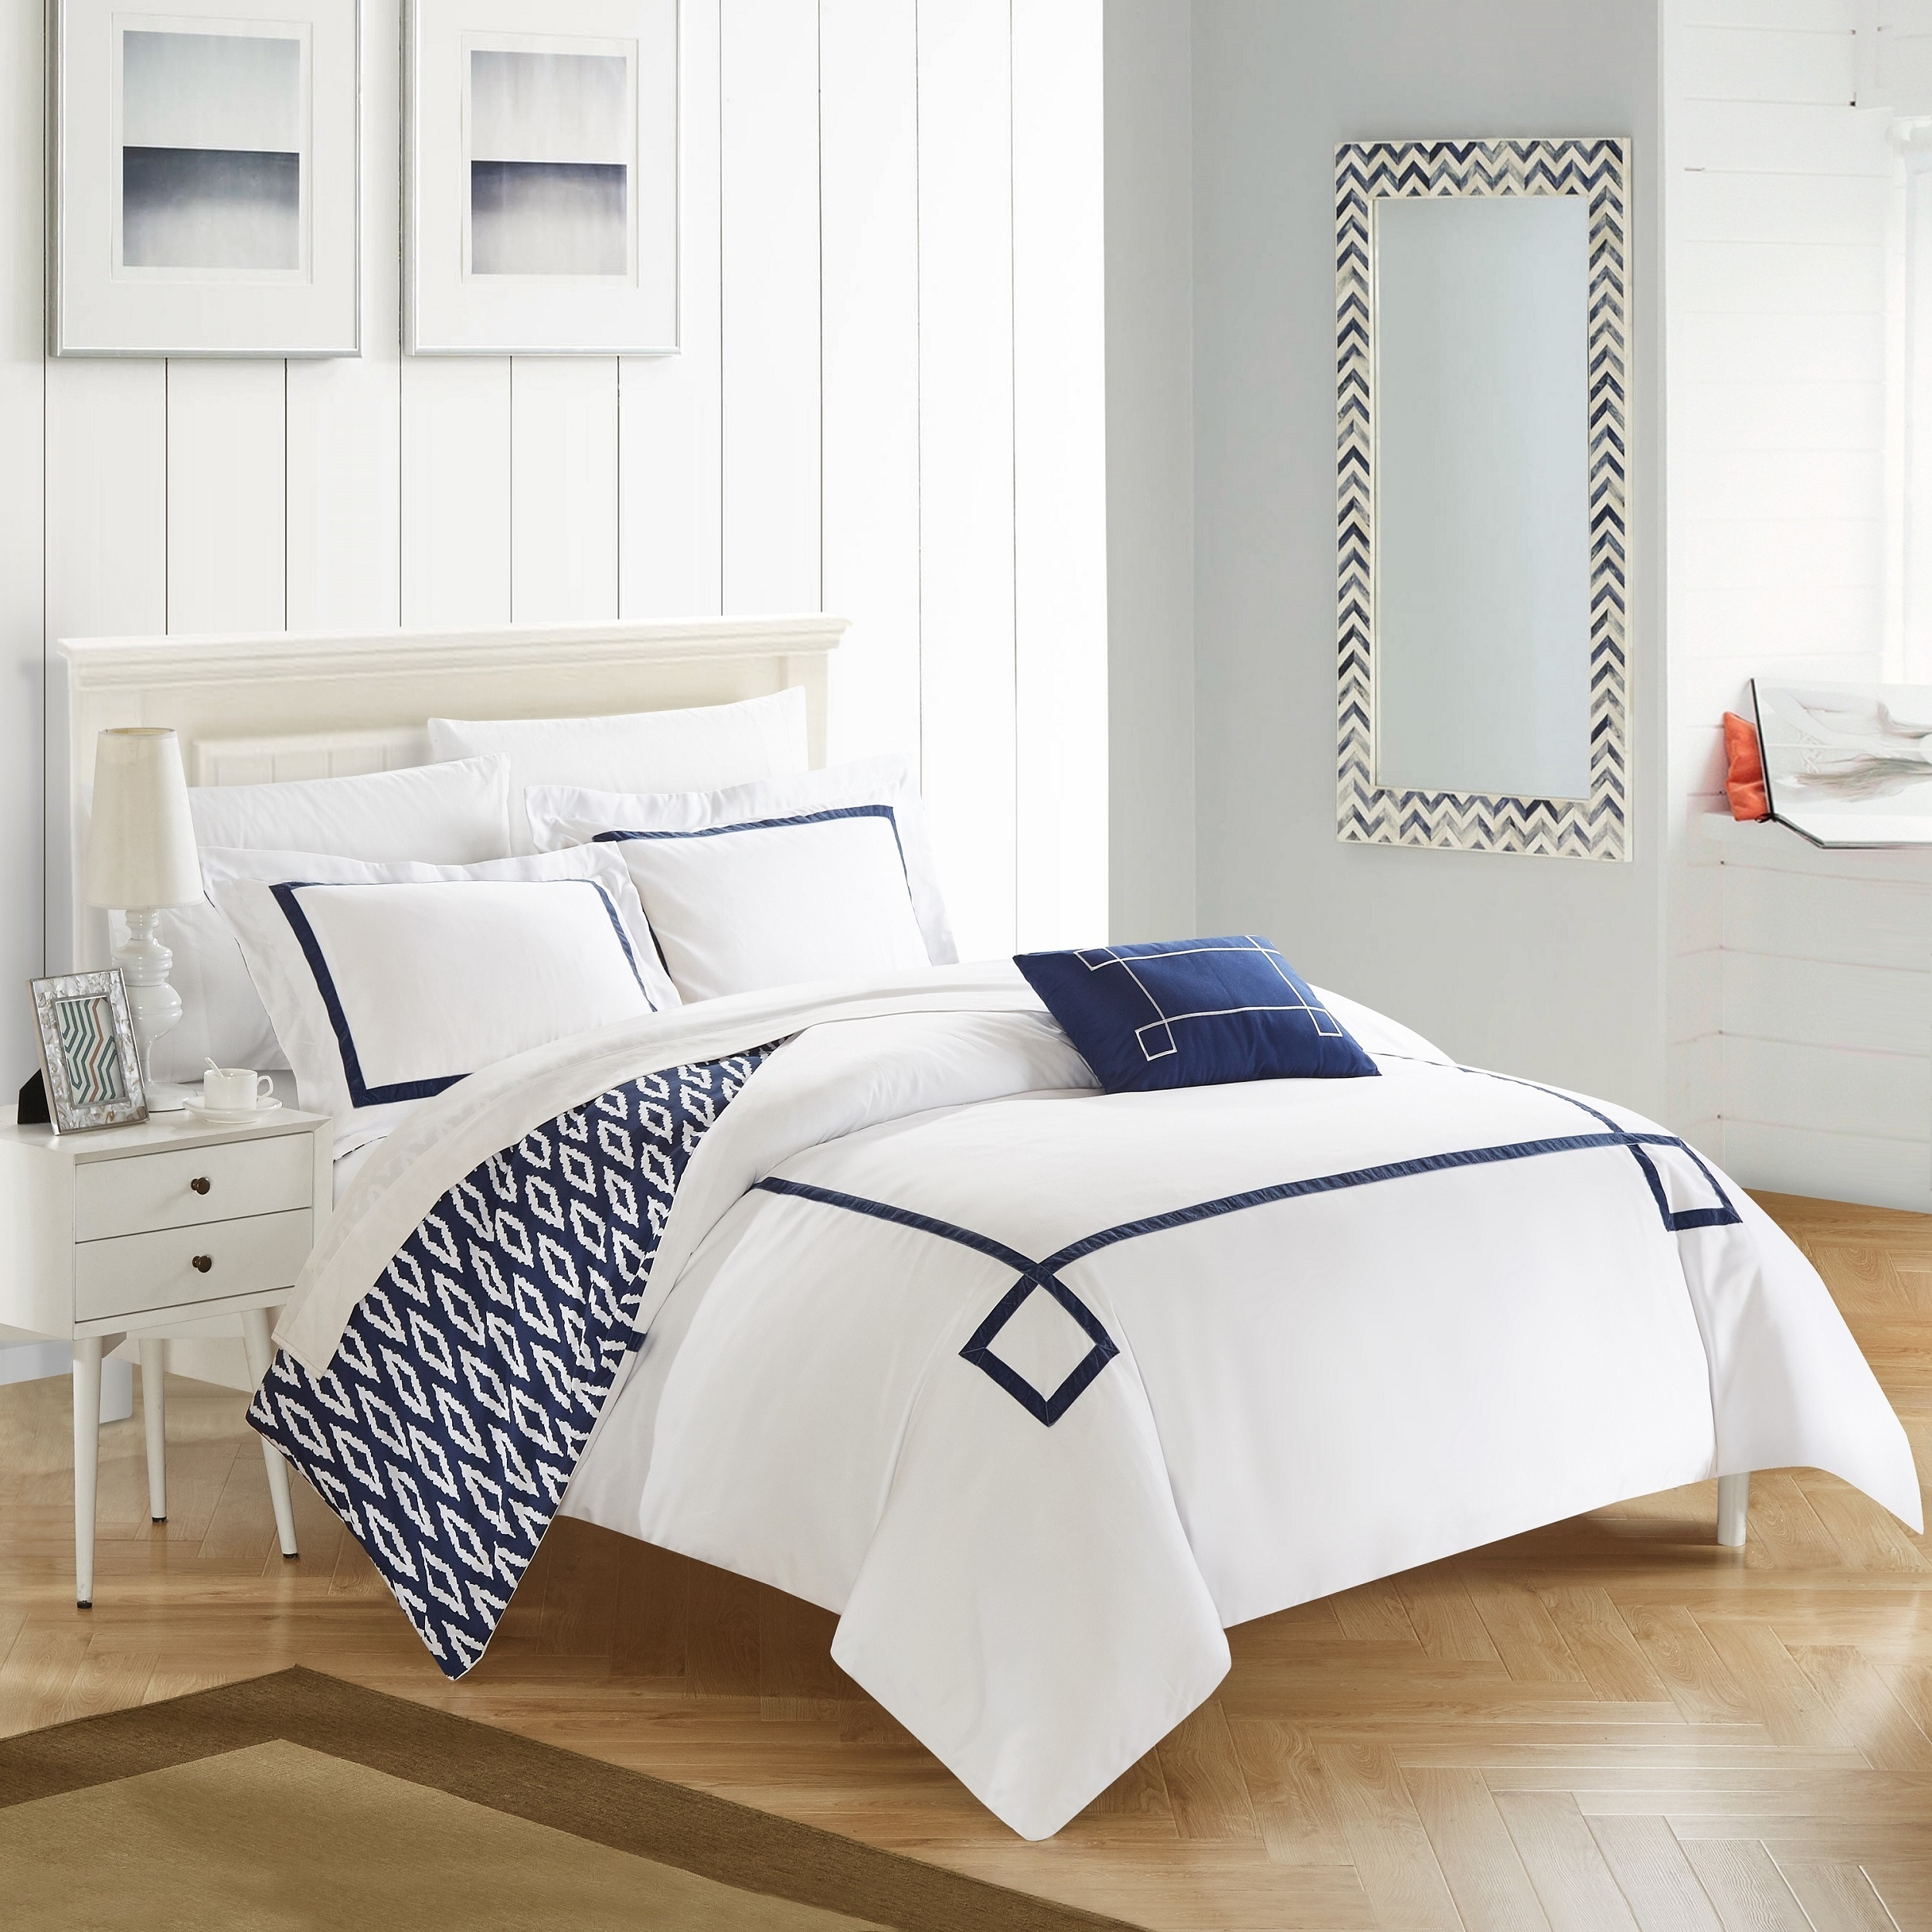 Shop chic home 4 piece xanti navy duvet cover set on sale free shipping today overstock com 12753171